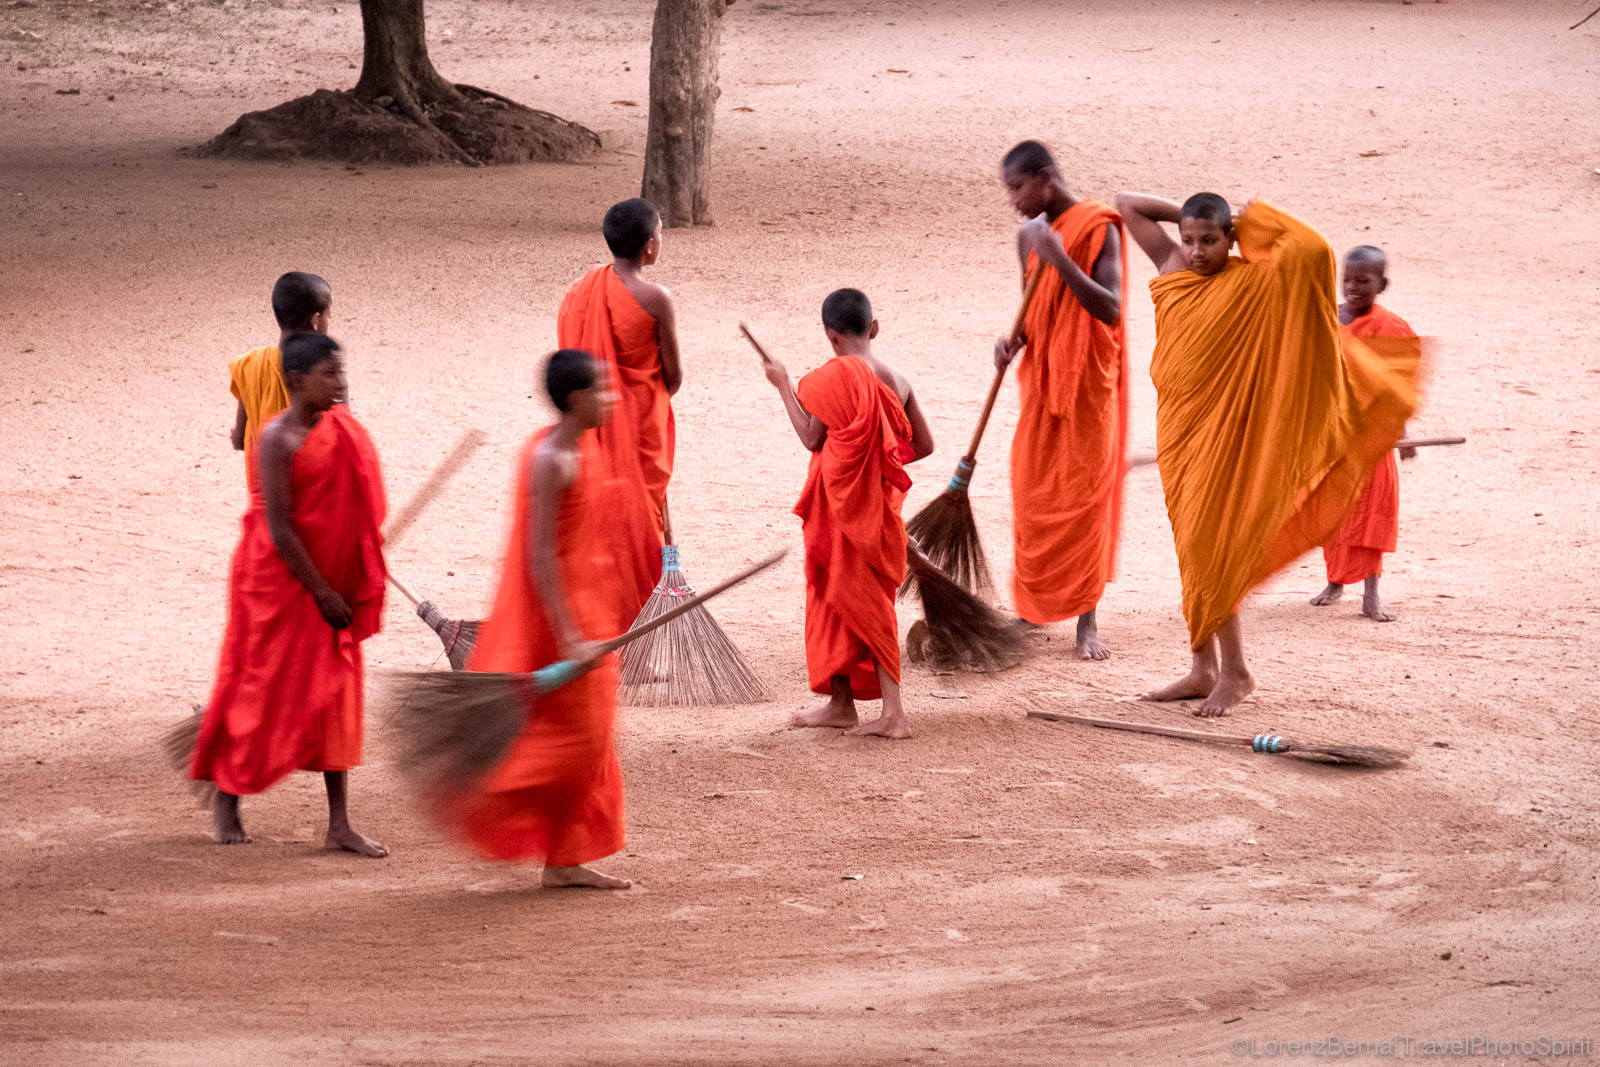 Group of monks on their morning duty, sweeping their monastery in Mihintale, Sri Lanka